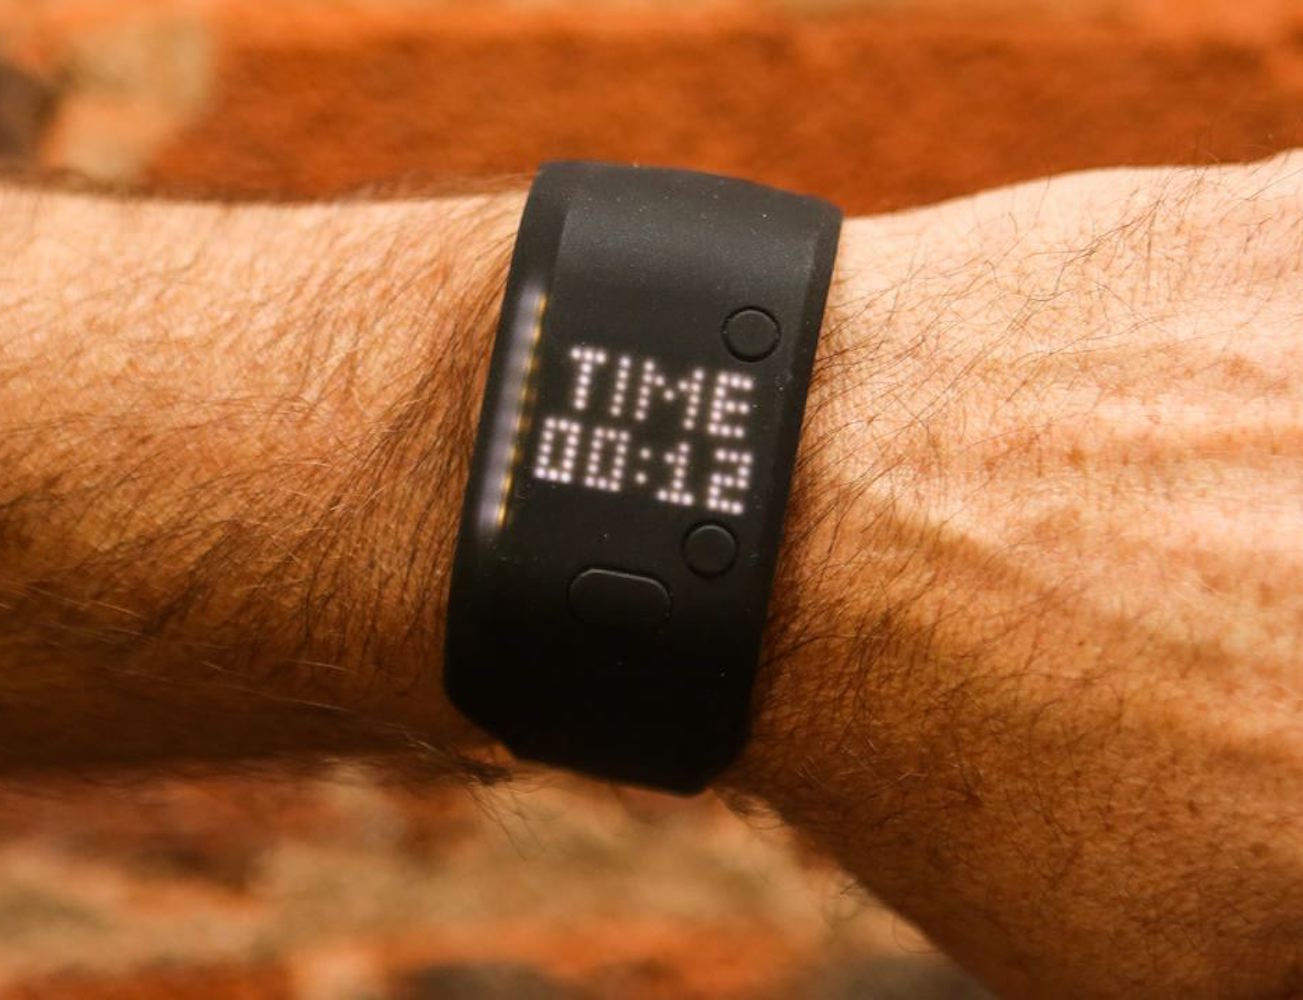 Fit Smart by adidas – Fitness and Activity Monitor Wristband